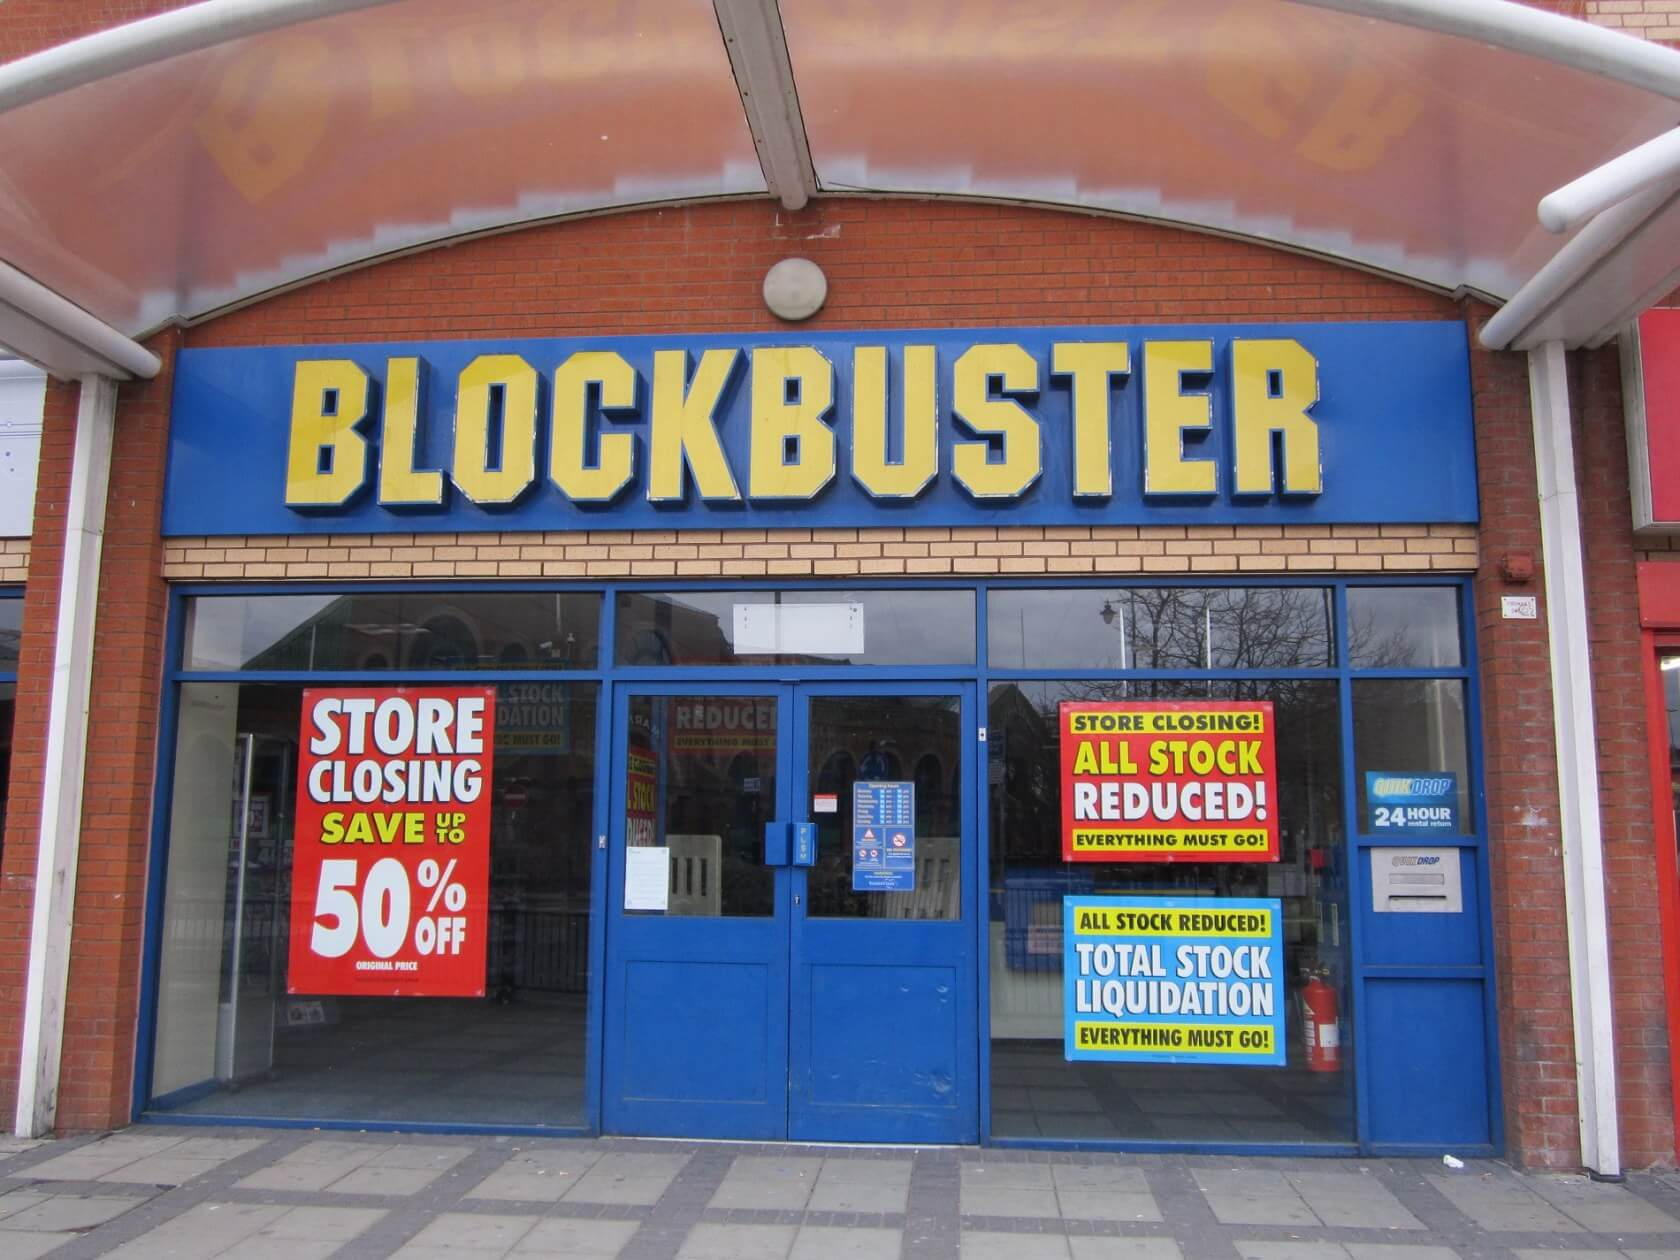 Just 1 Blockbuster store left in US as Alaska stores close